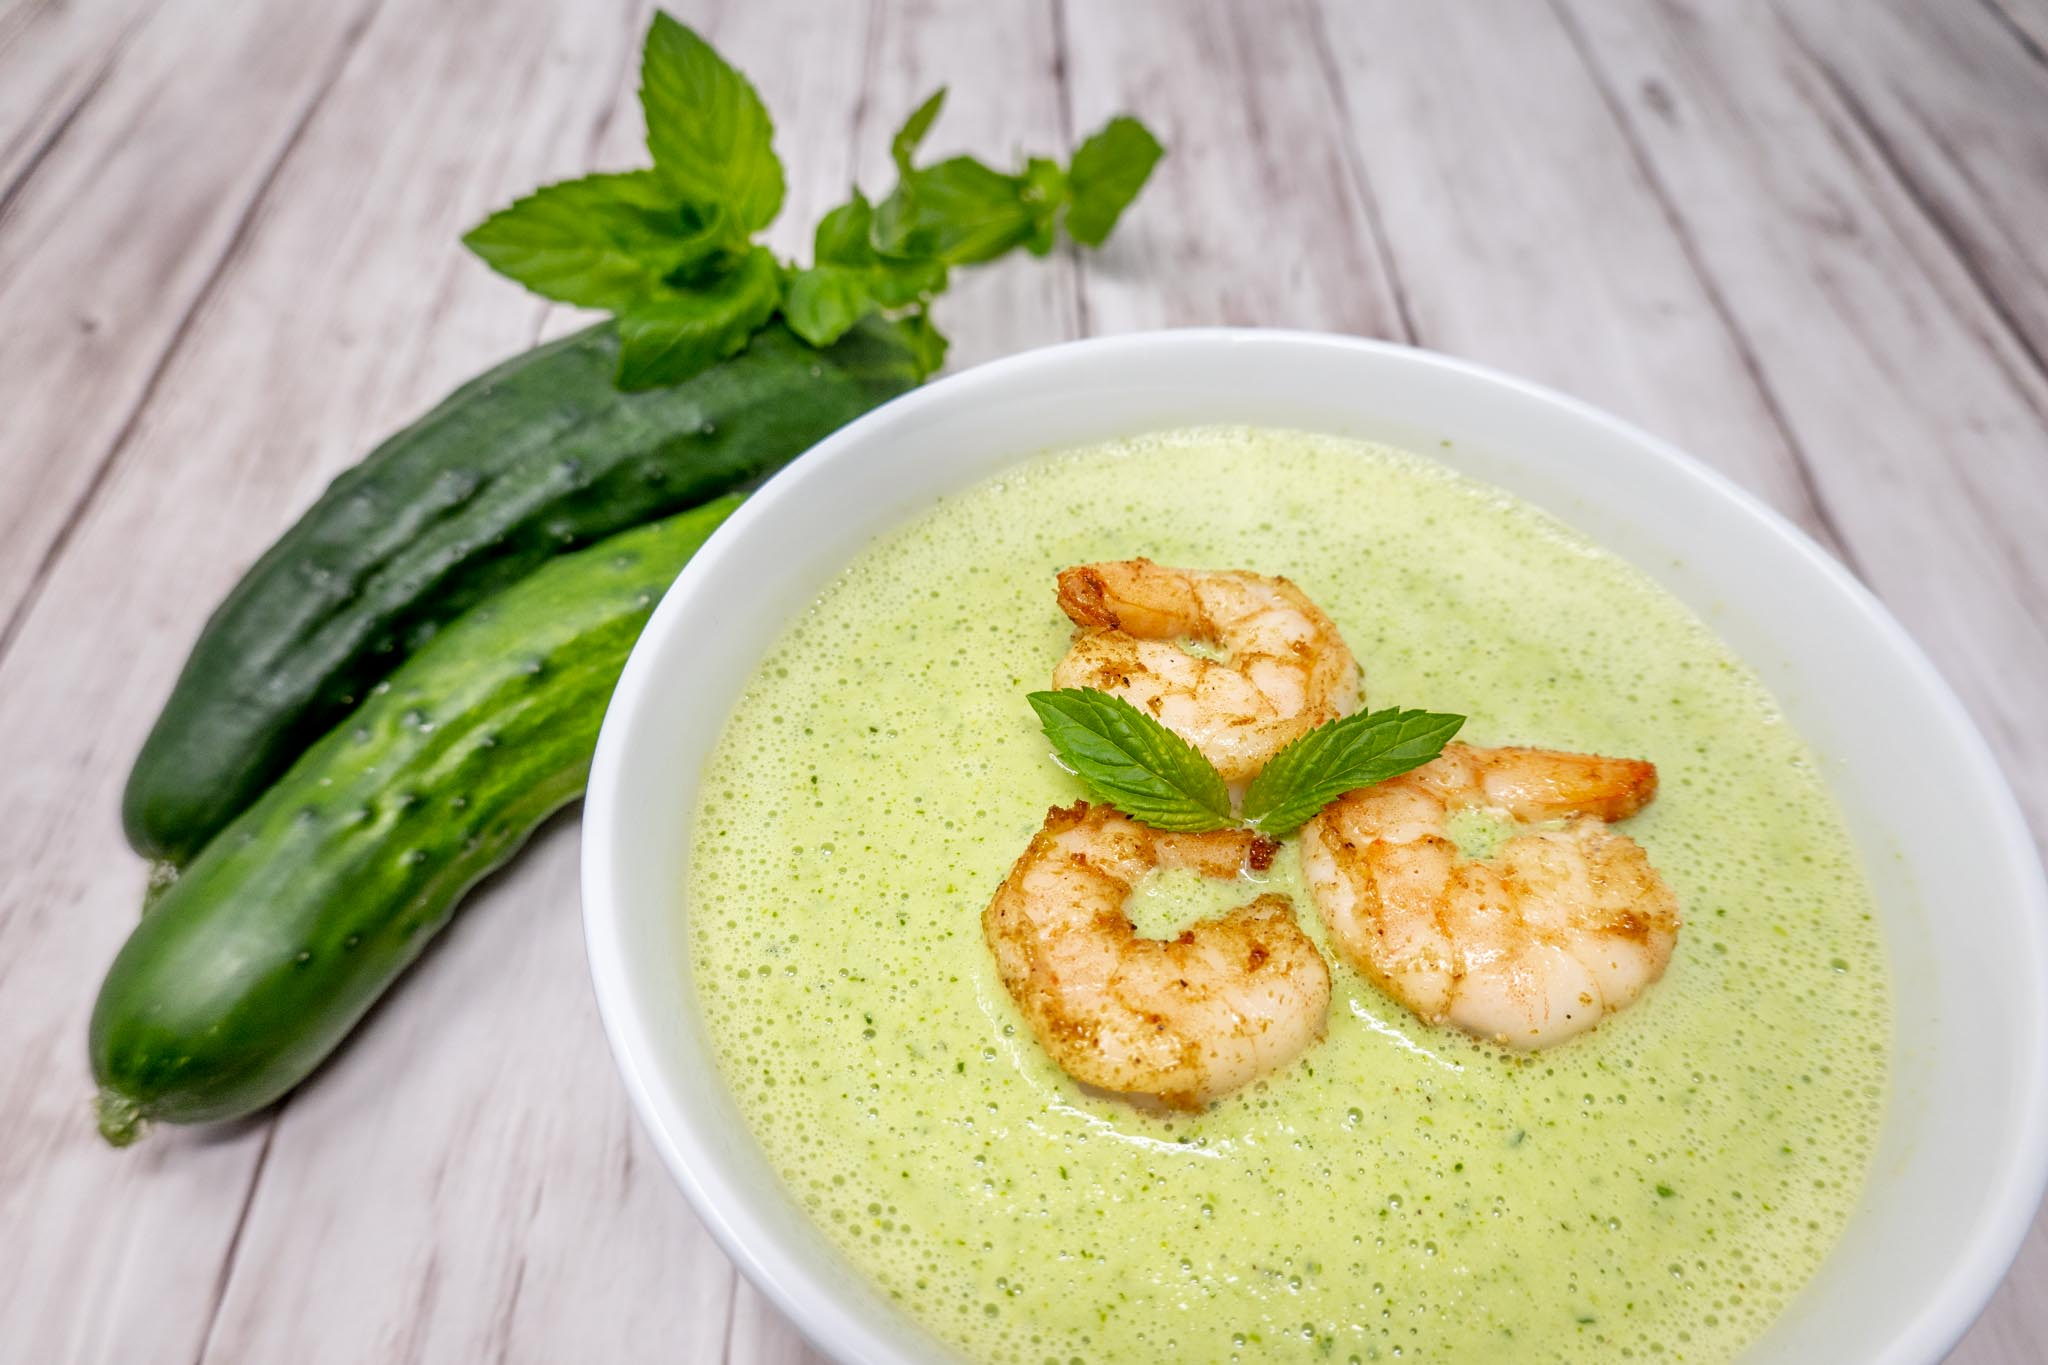 Bowl of green gazpacho topped with shrimp next to cucumbers and herbs